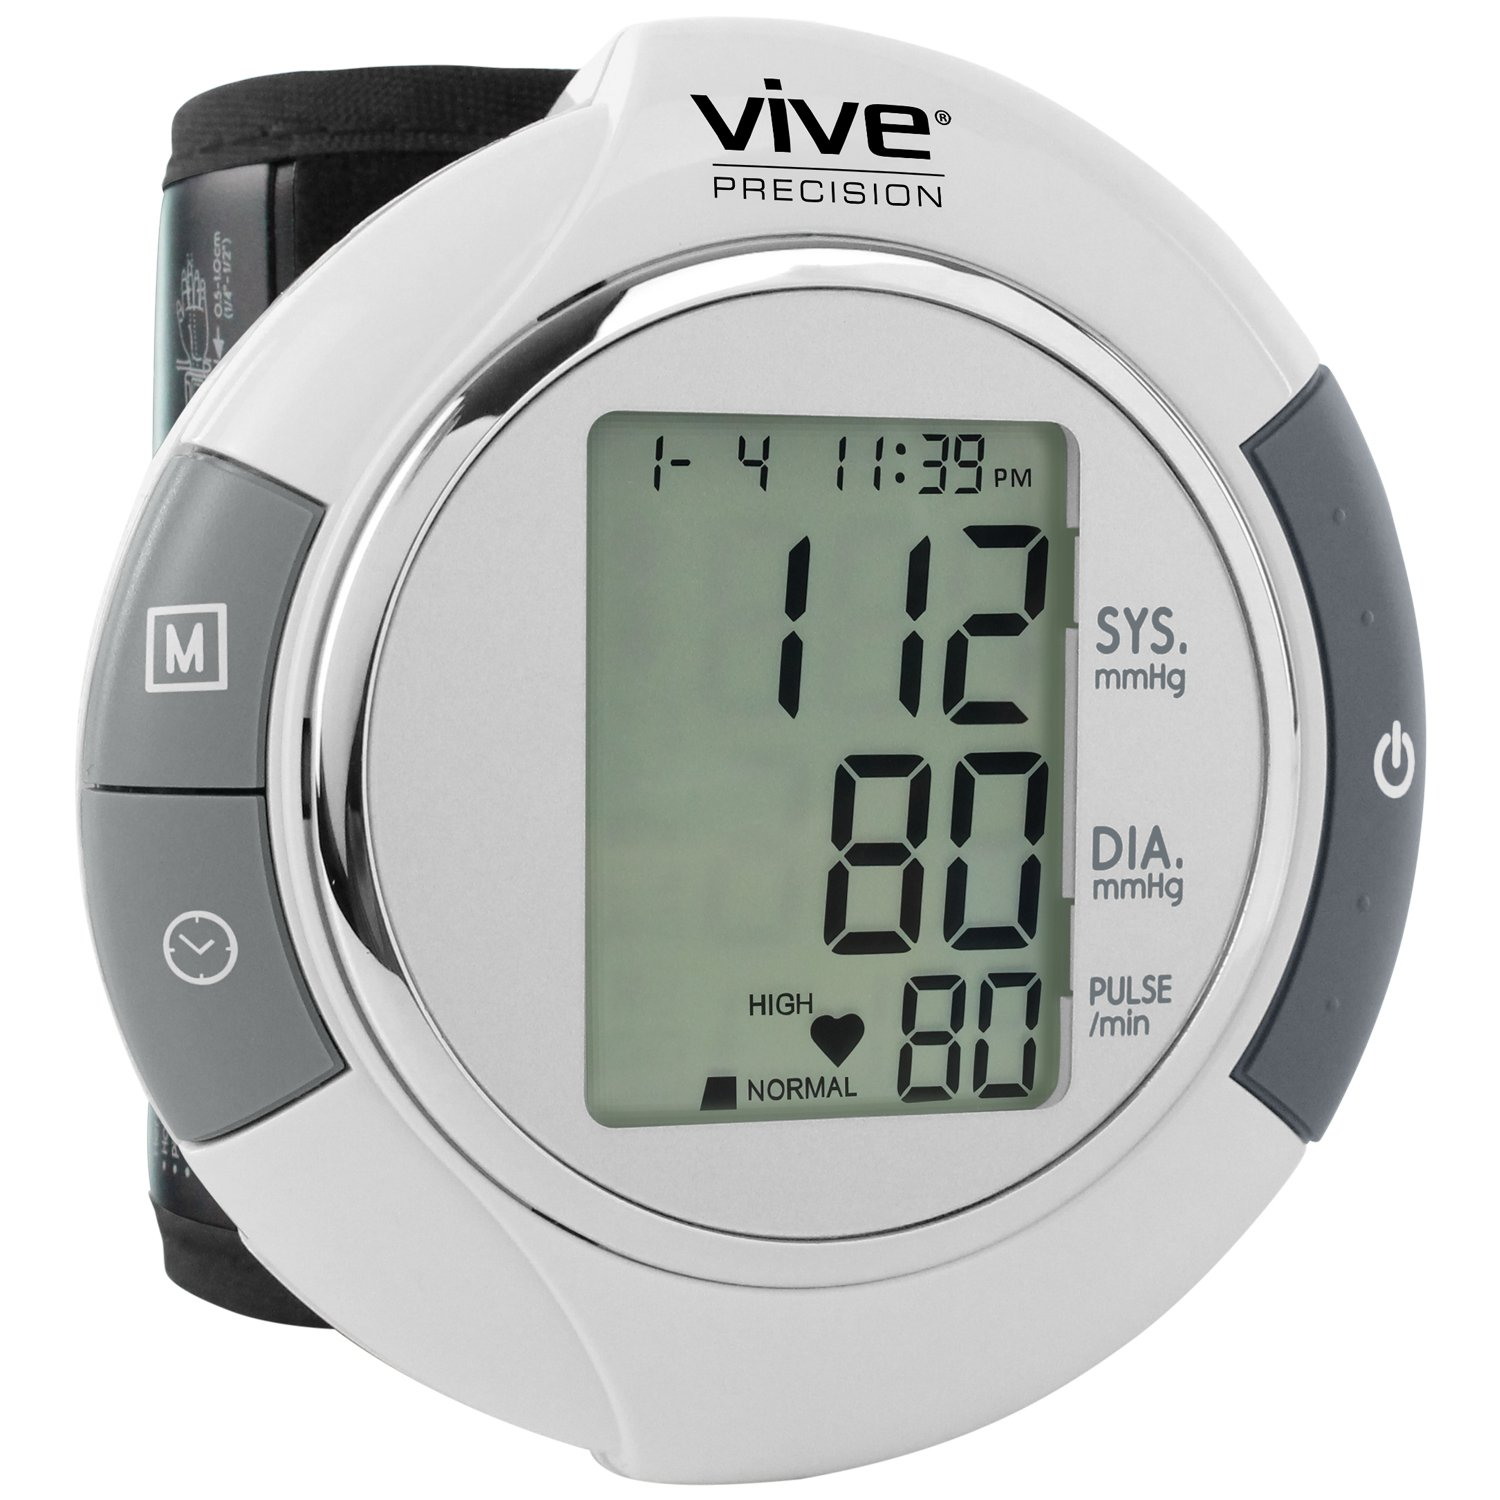 Vive Precision Wrist Blood Pressure Monitor - Automatic Digital BP Tester Machine - Portable, Accurate, Electronic, Home Meter Device - Auto Heart Reader for Pulse Rate - 1 Size Fits Most